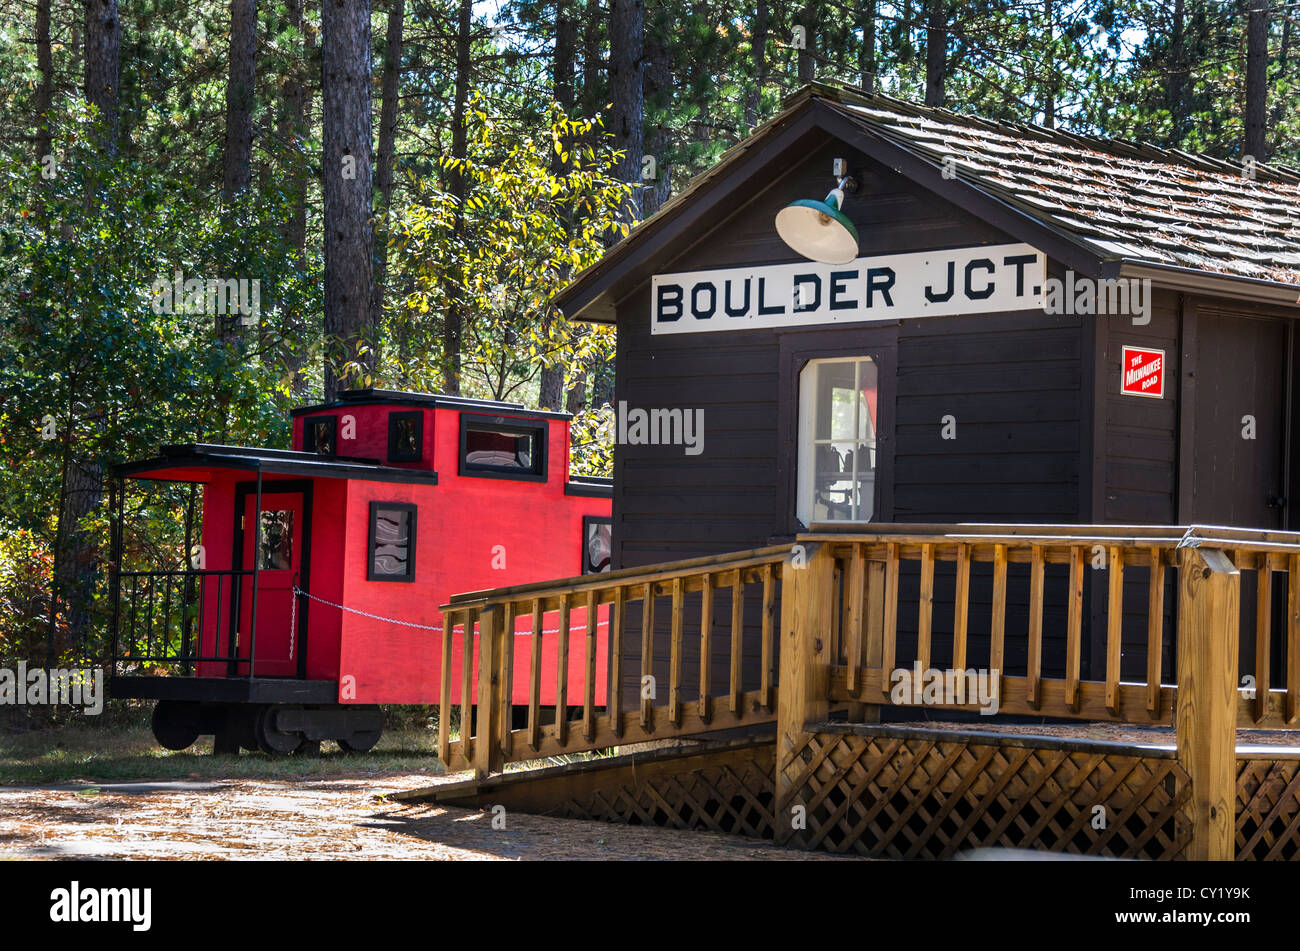 The Boulder Junction Museum in the Northwoods town of Boulder Junction, Wisconsin - Stock Image